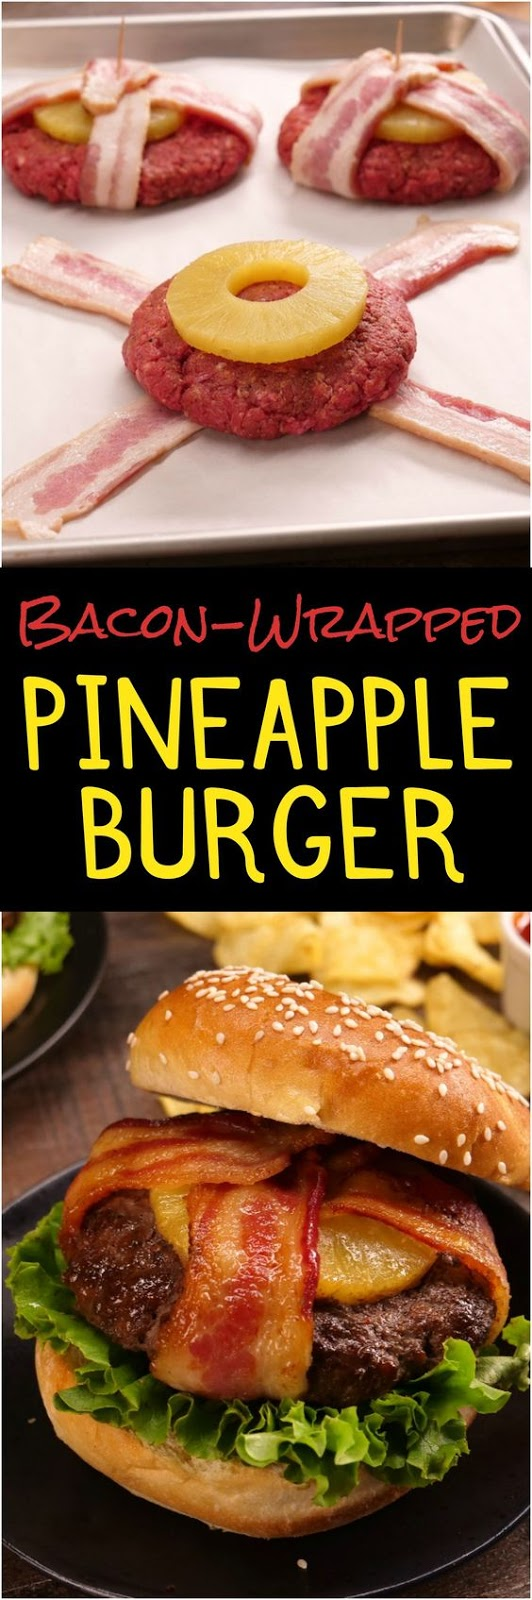 Bacon-Wrapped Pineapple Burger